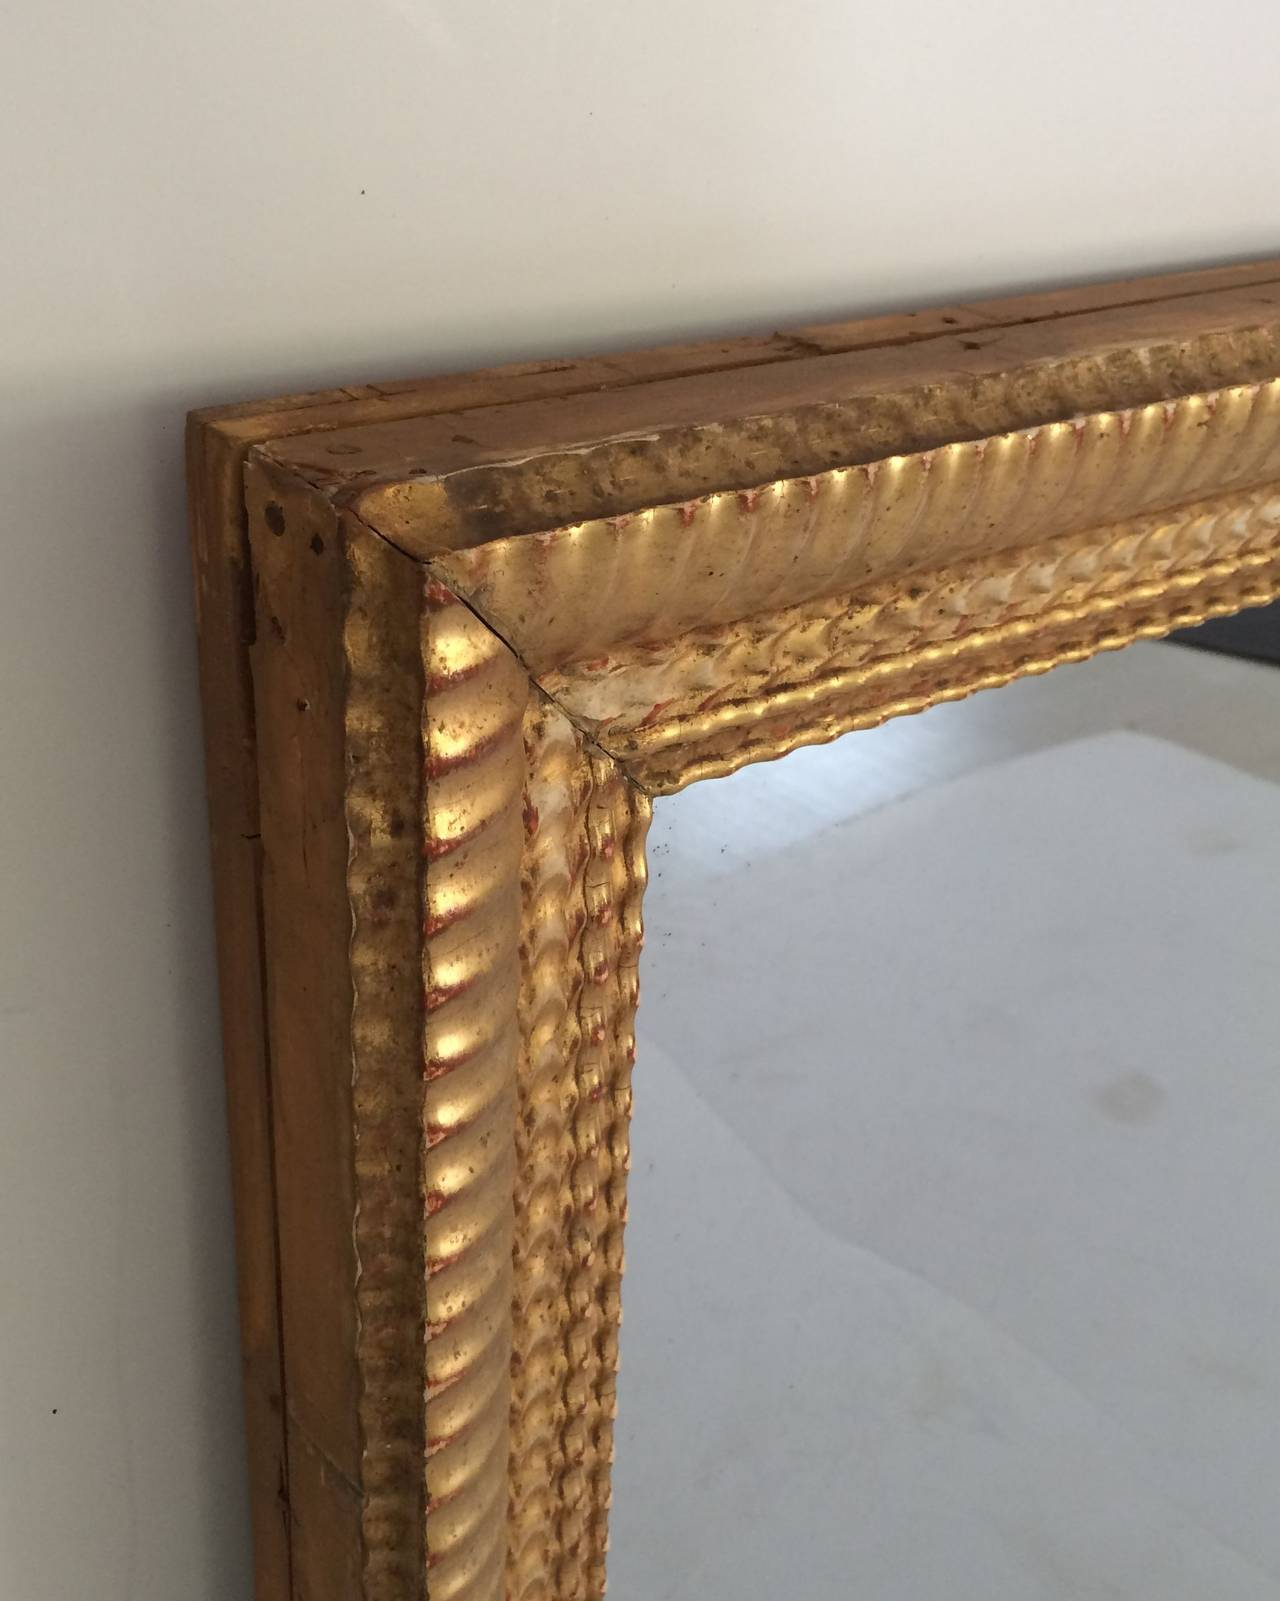 19th Century French Gilt Rectangular Wall Mirror (38 x 32) For Sale